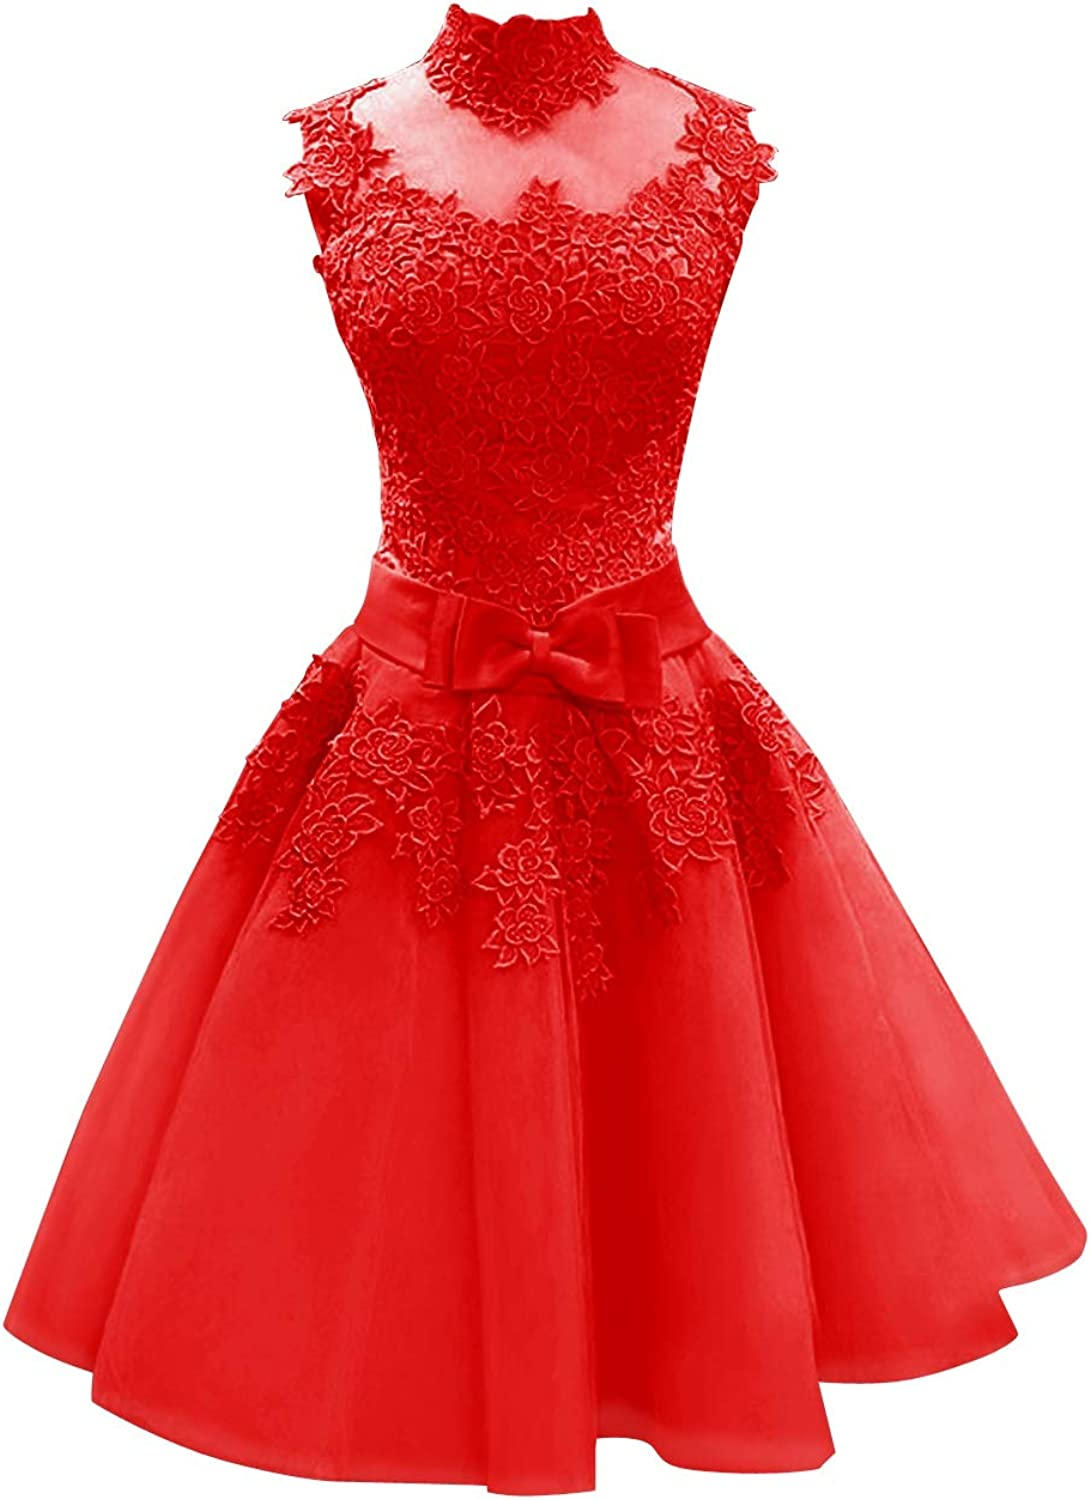 SUNFURA Women's Lace High Neck Short Prom Homecoming Dress with Ribbon Bow